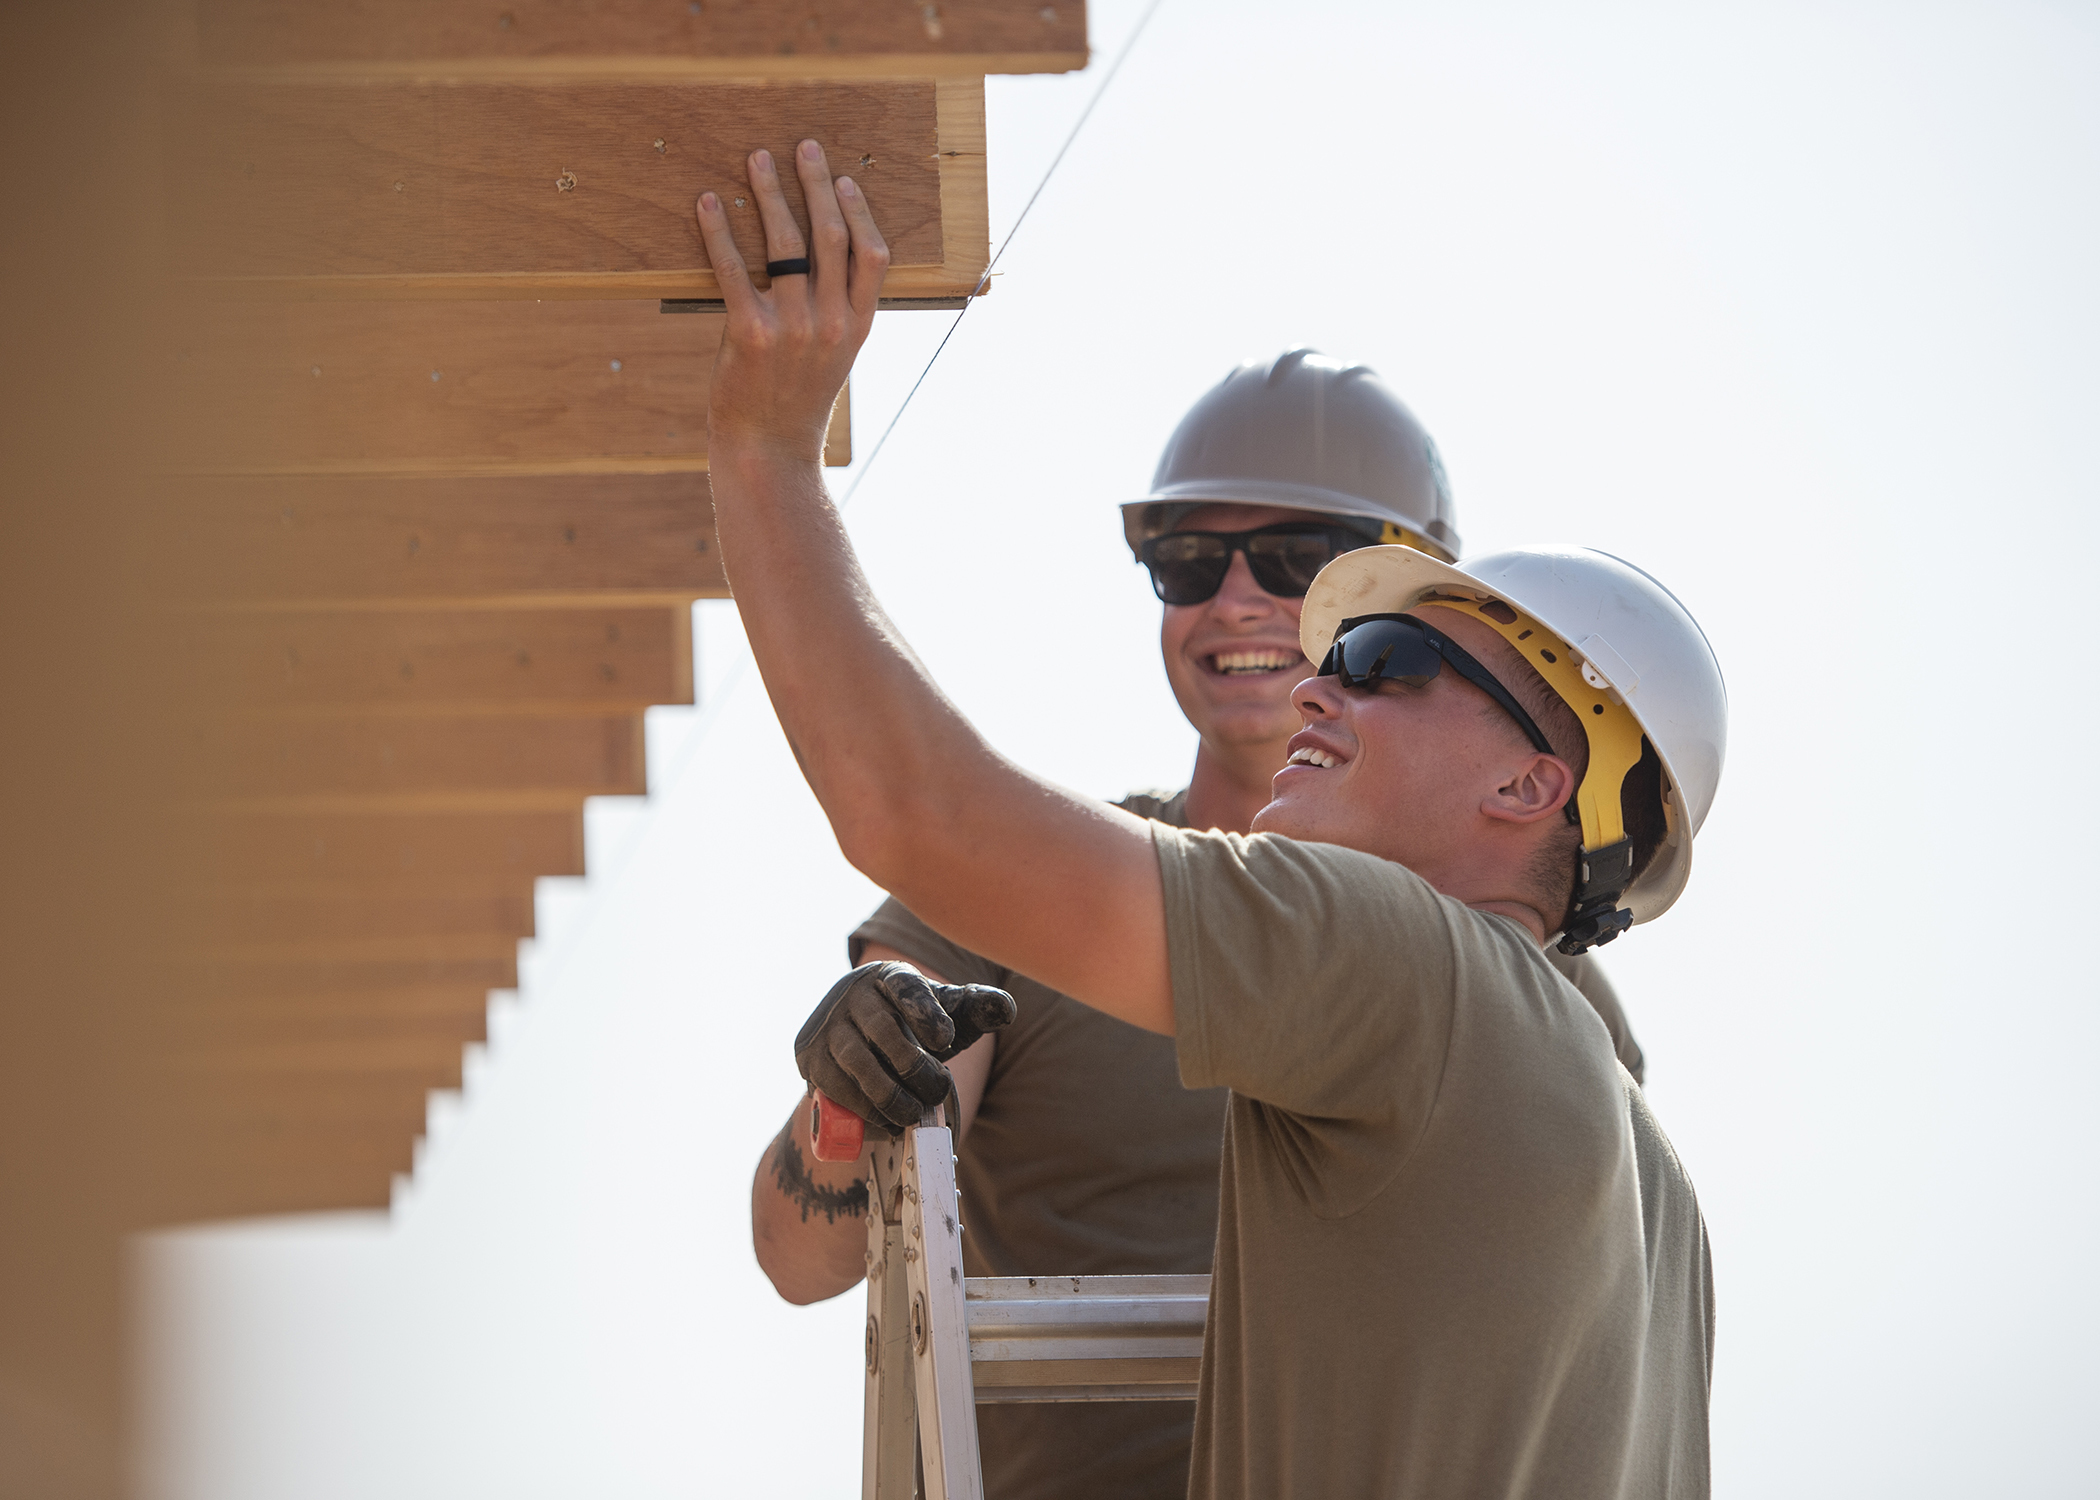 U.S. Army Soldiers from First Platoon, 465th Engineer Company, 926th Engineer Battalion, 926th Engineer Brigade, 412th Theater Engineer Command, based in Birmingham, Alabama, assigned to Combined Joint Task Force-Horn of Africa, cuts trusses to even lengths while building lodging at a forward operating location in East Africa, March 8, 2019. The lodging will replace temporary tents and accommodate U.S. Air Force and U.S. Army personnel at the location. (U.S. Air Force photo by Tech. Sgt. Shawn Nickel)